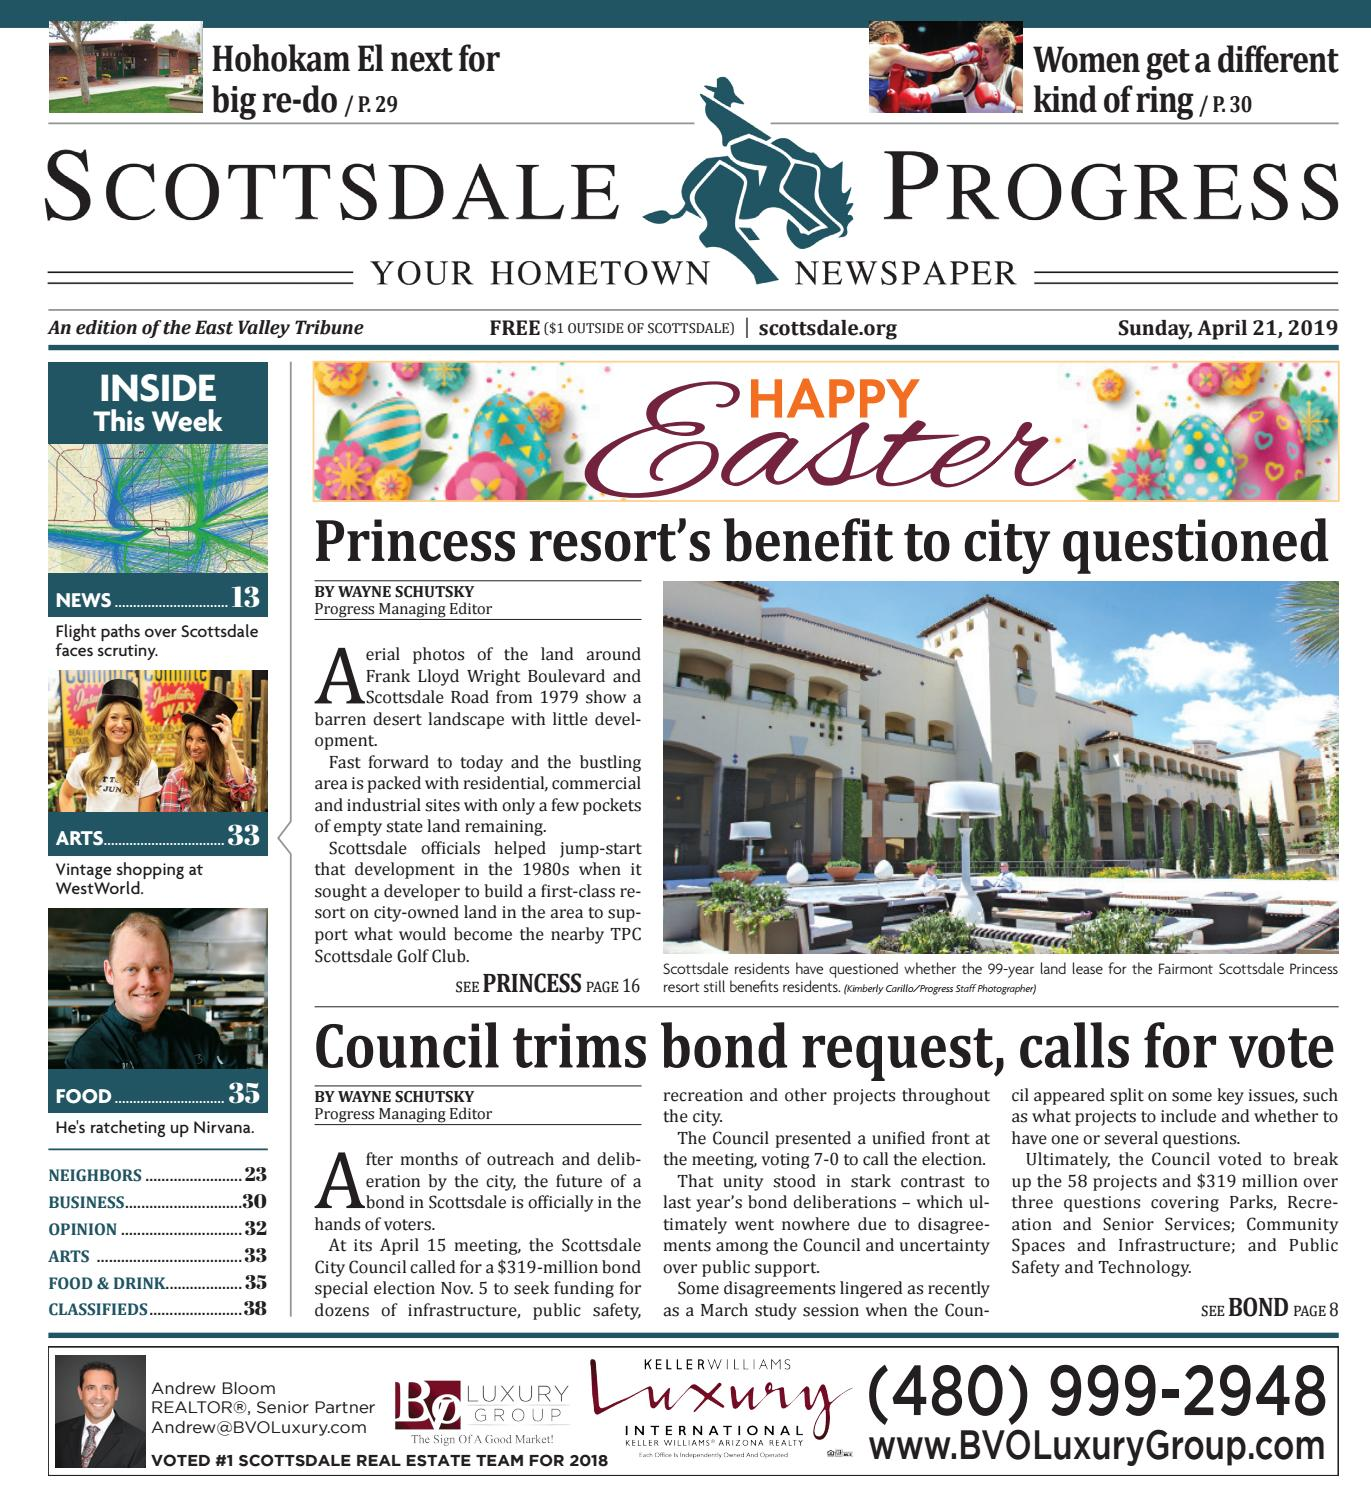 Scottsdale Progress 04-21-2019 by Times Media Group - issuu